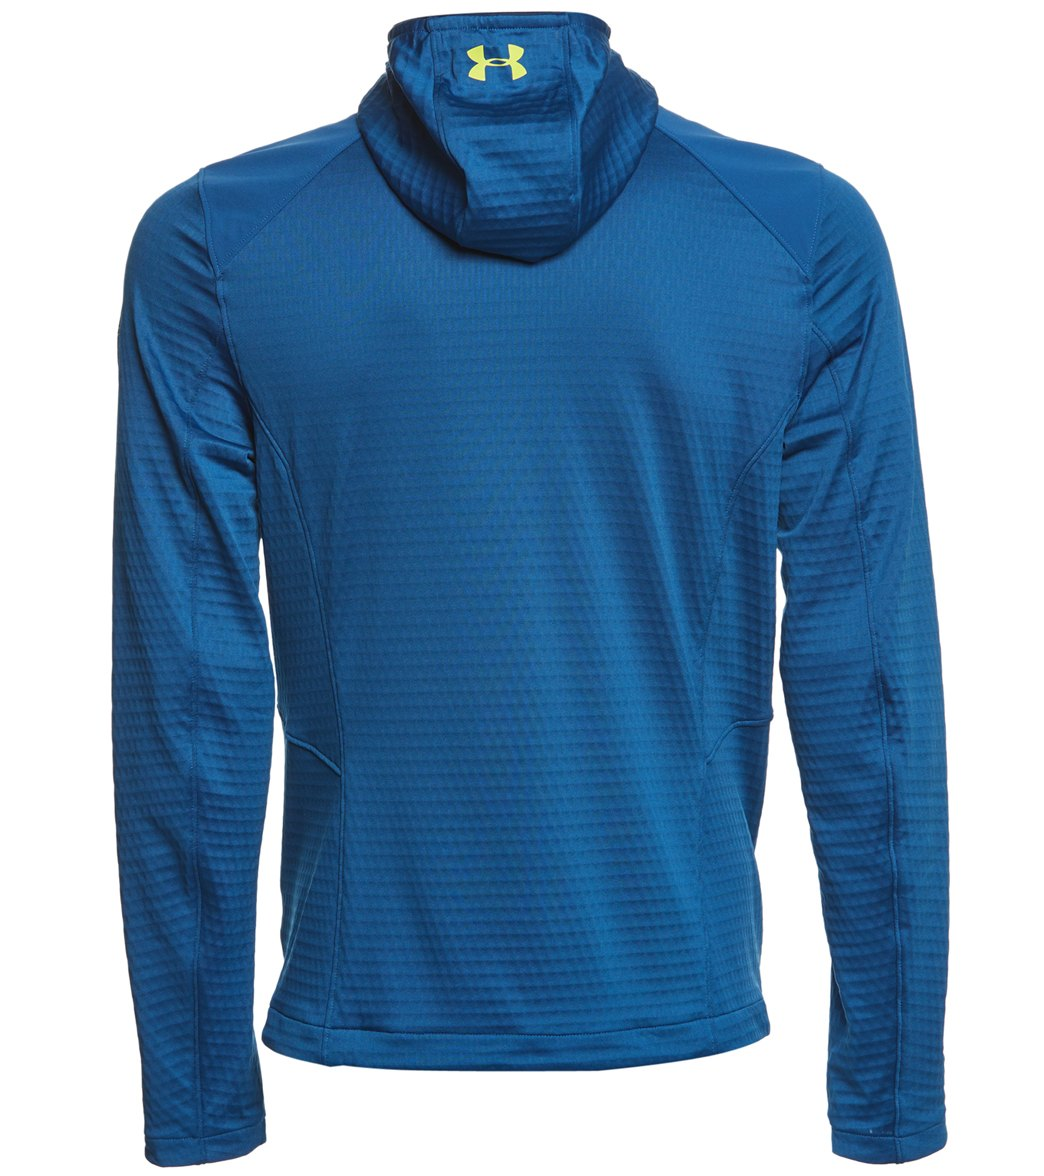 f21f3899c Under Armour Men's UA CGR Exert Jacket at SwimOutlet.com - Free Shipping